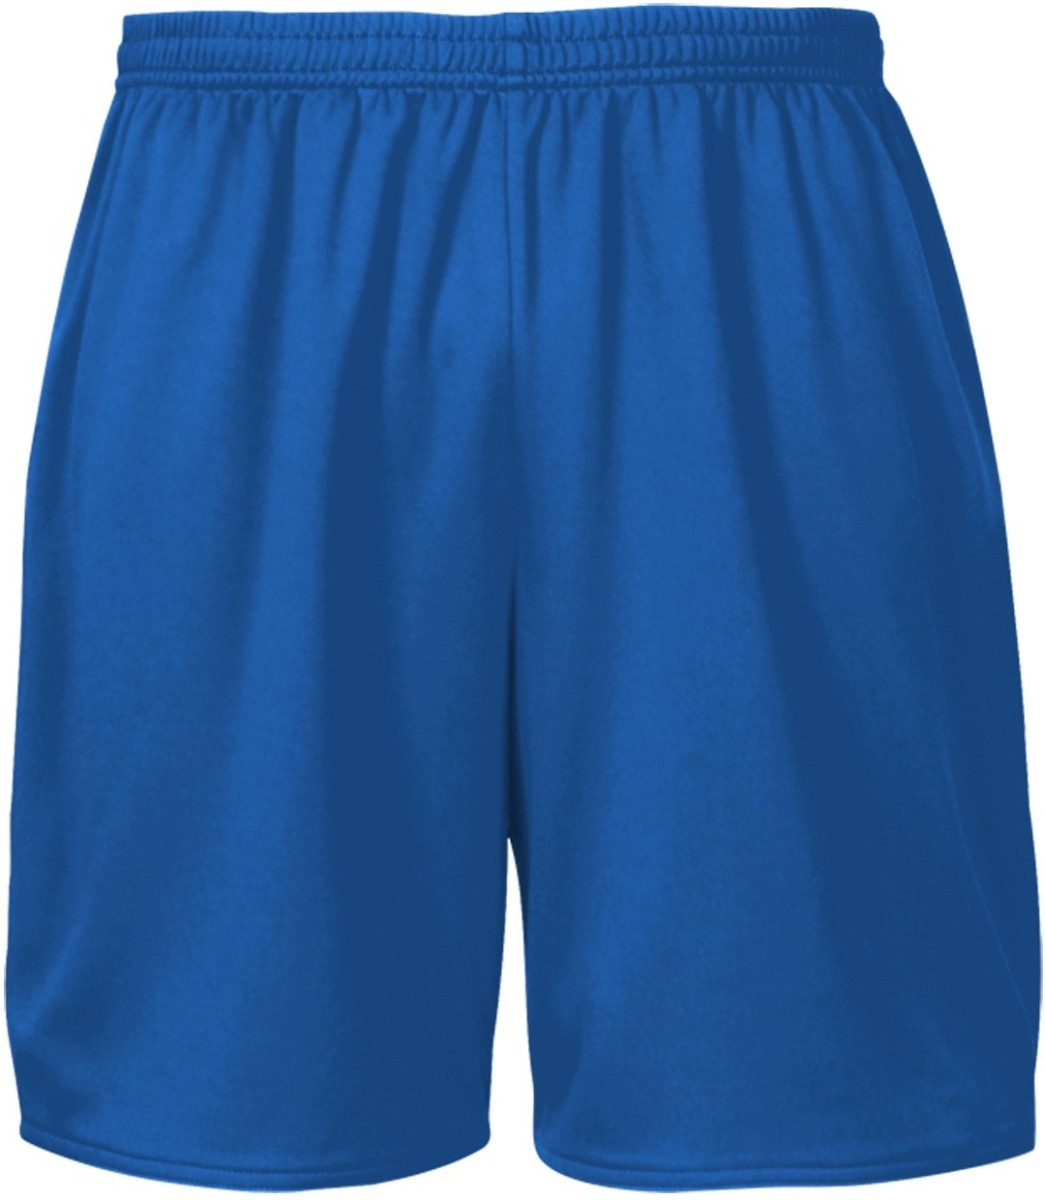 Men's Training Shorts-StormTech